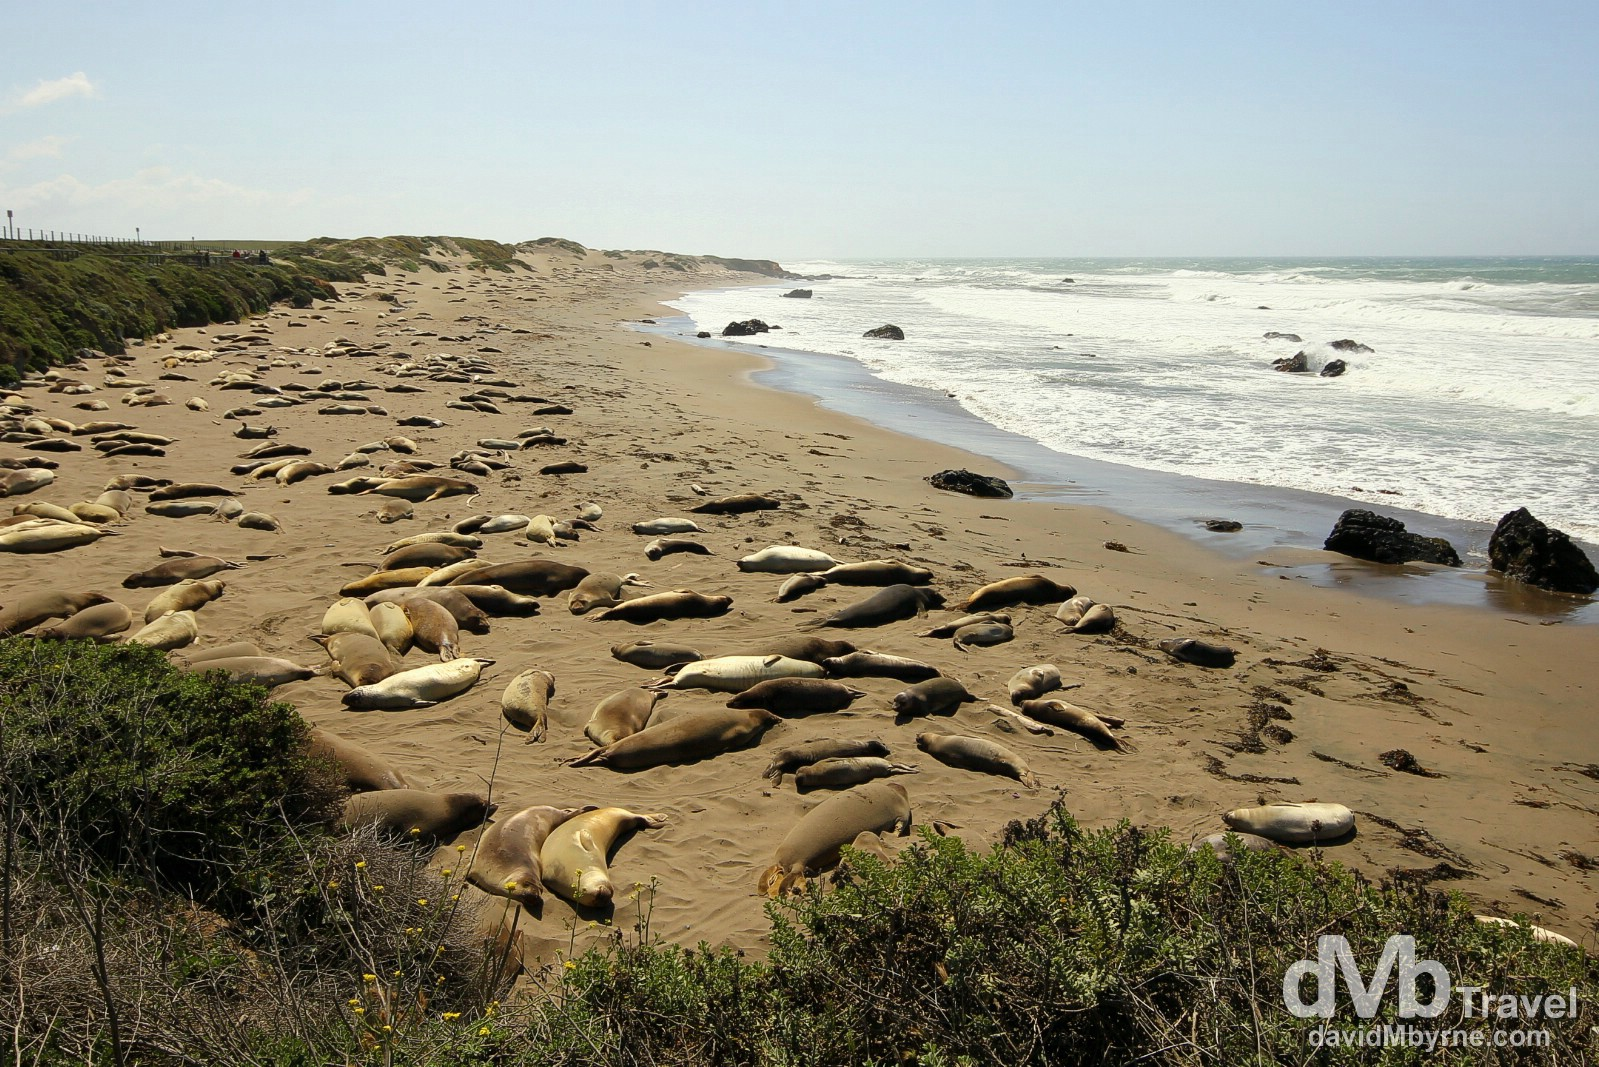 Elephant Seals resting on a beach off the Cabrillo Highway, San Simeon, California, USA. April 8th 2013.